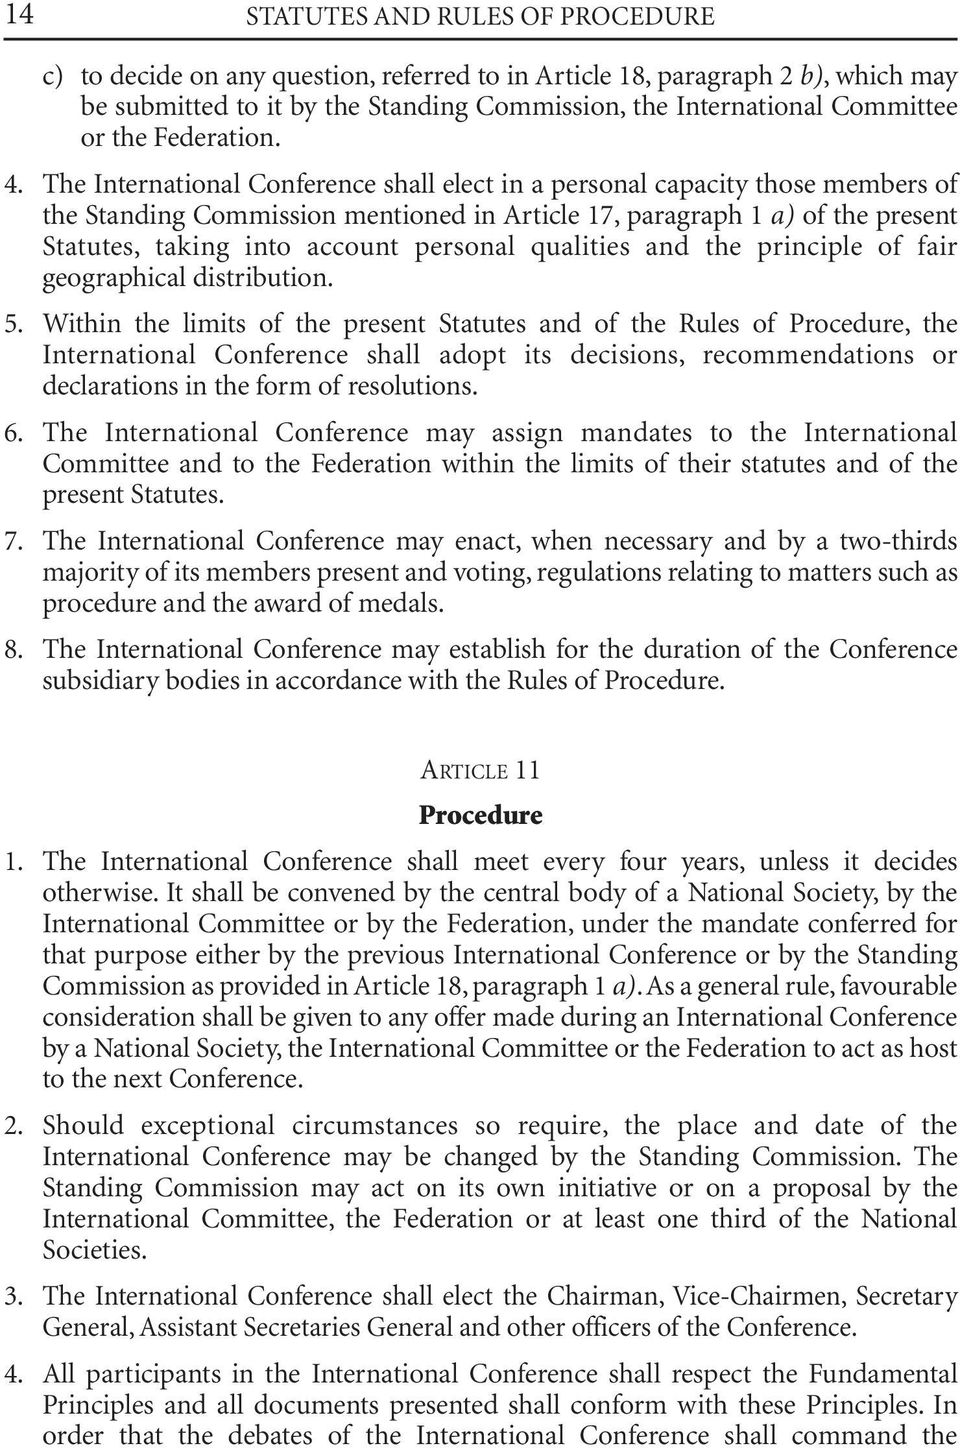 The International Conference shall elect in a personal capacity those members of the Standing Commission mentioned in Article 17, paragraph 1 a) of the present Statutes, taking into account personal